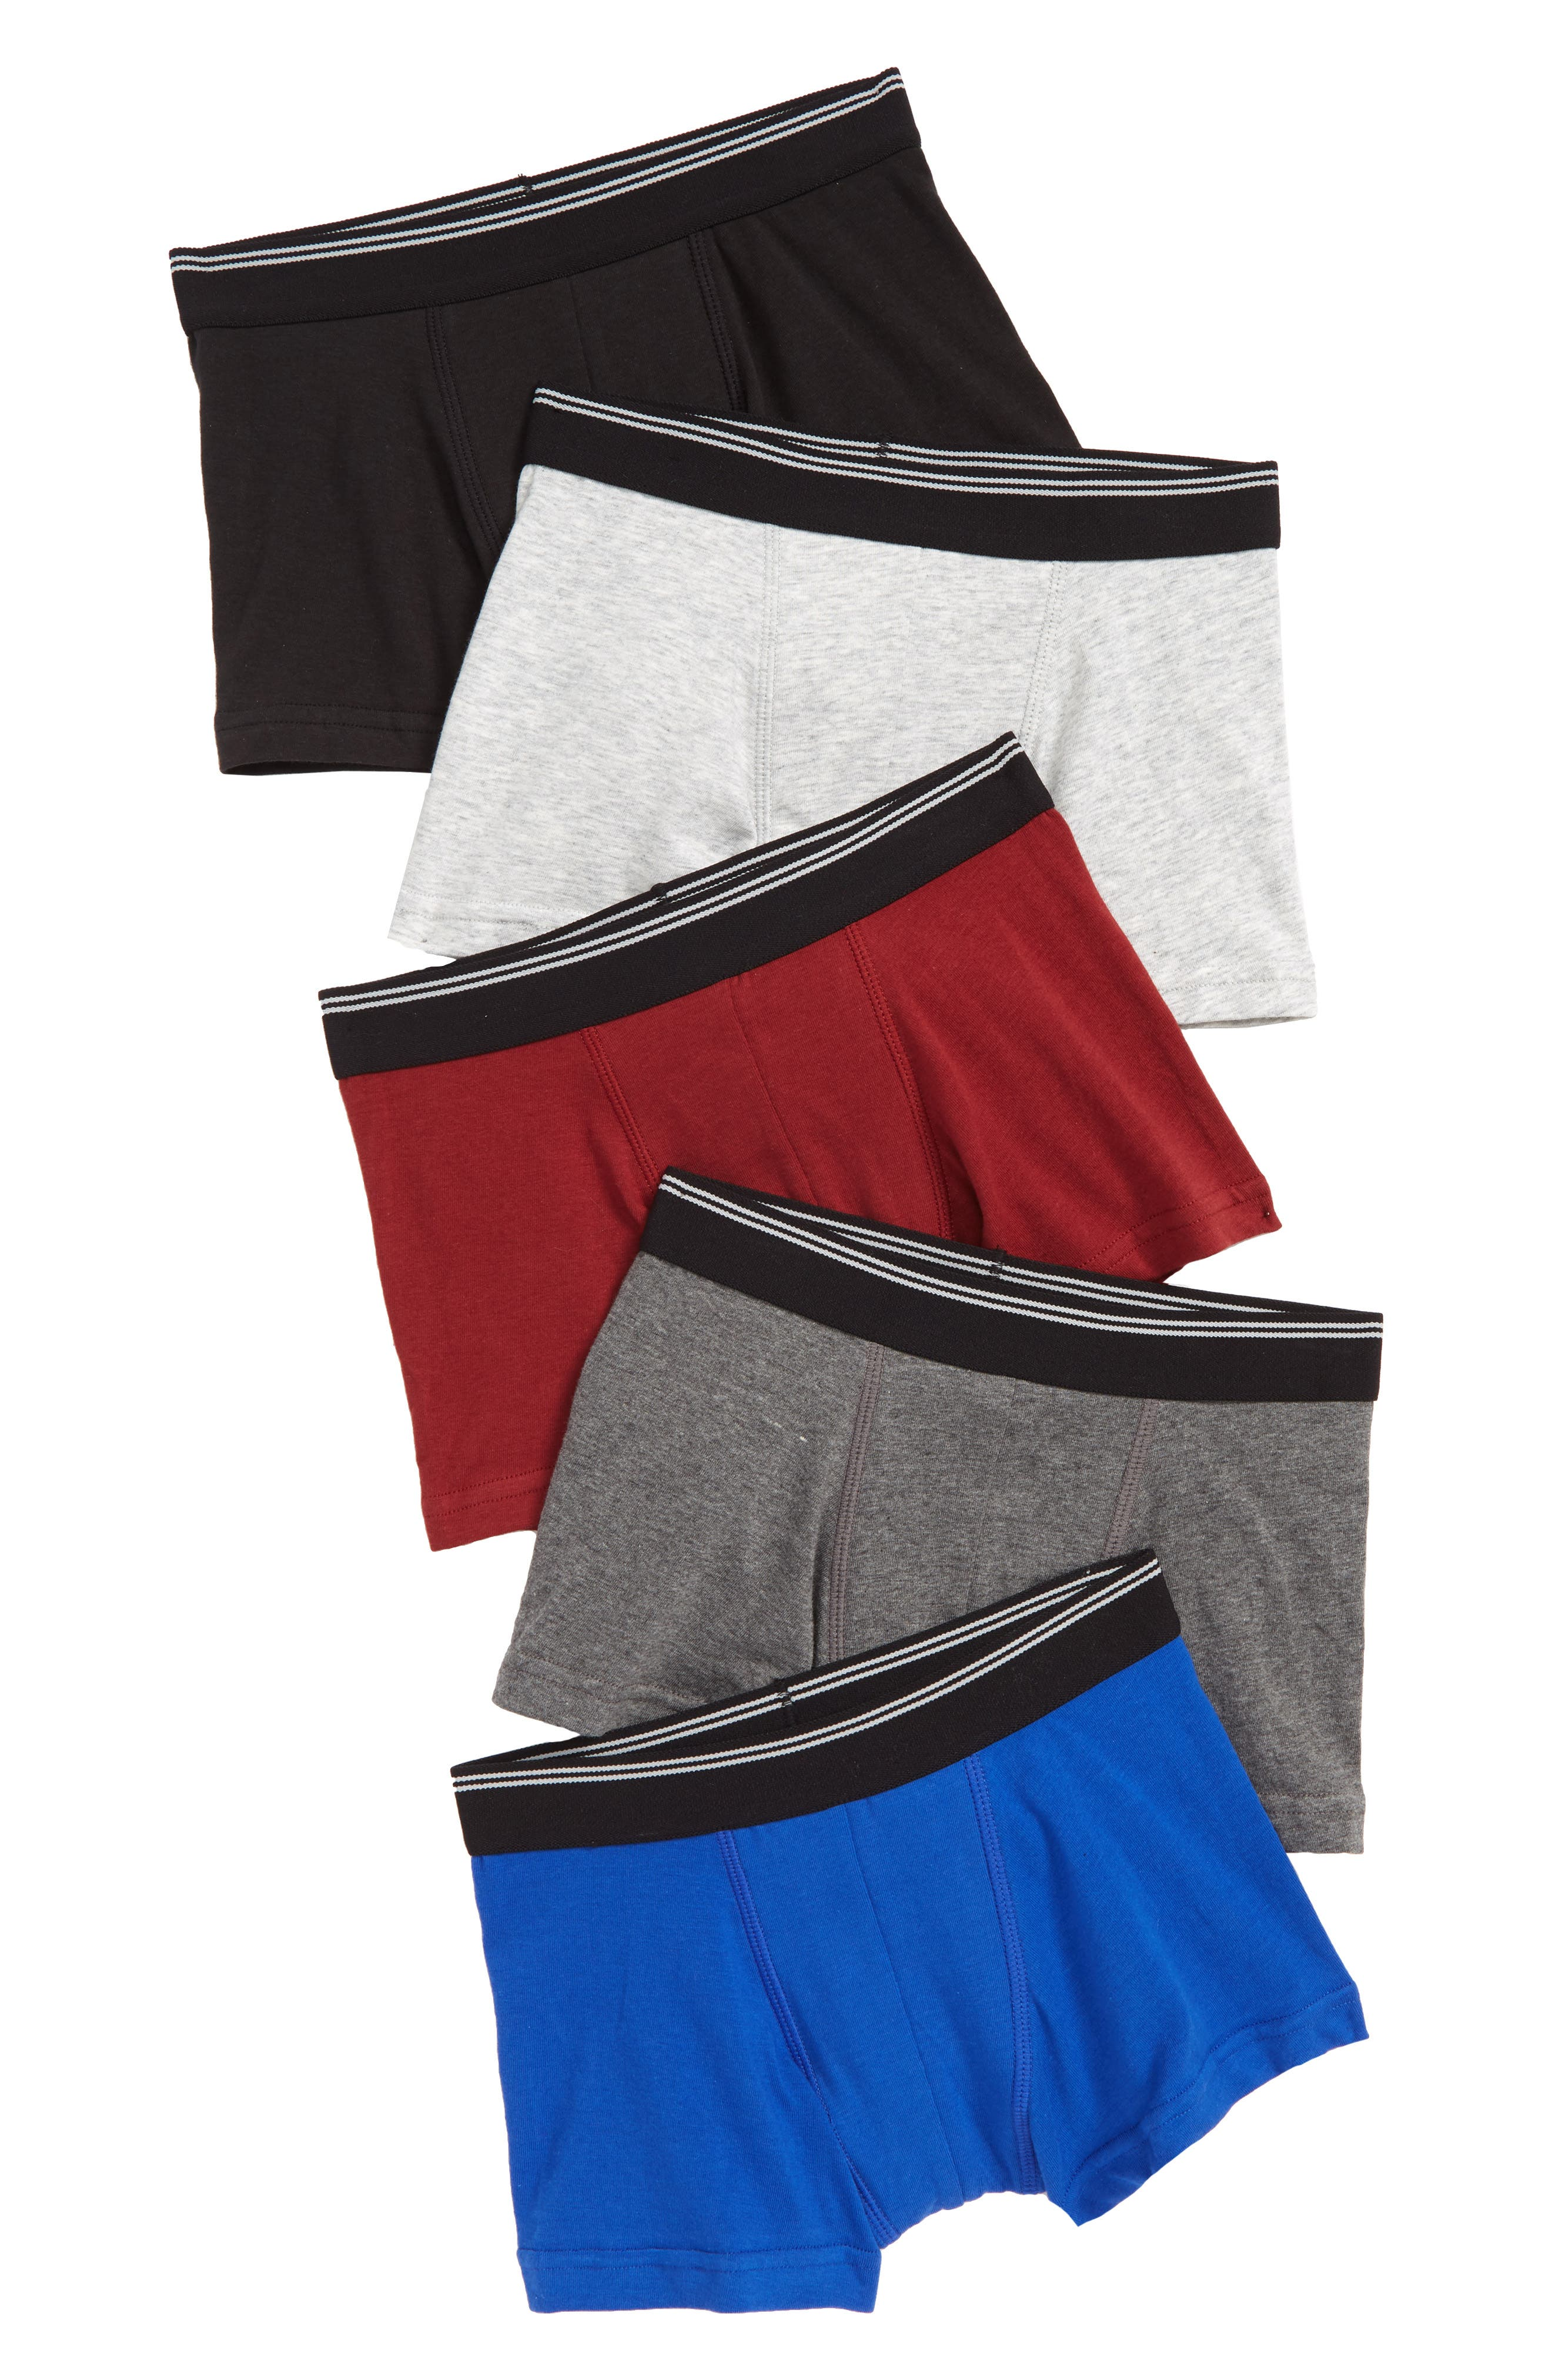 5-Pack Trunks,                             Main thumbnail 1, color,                             SOLID PACK